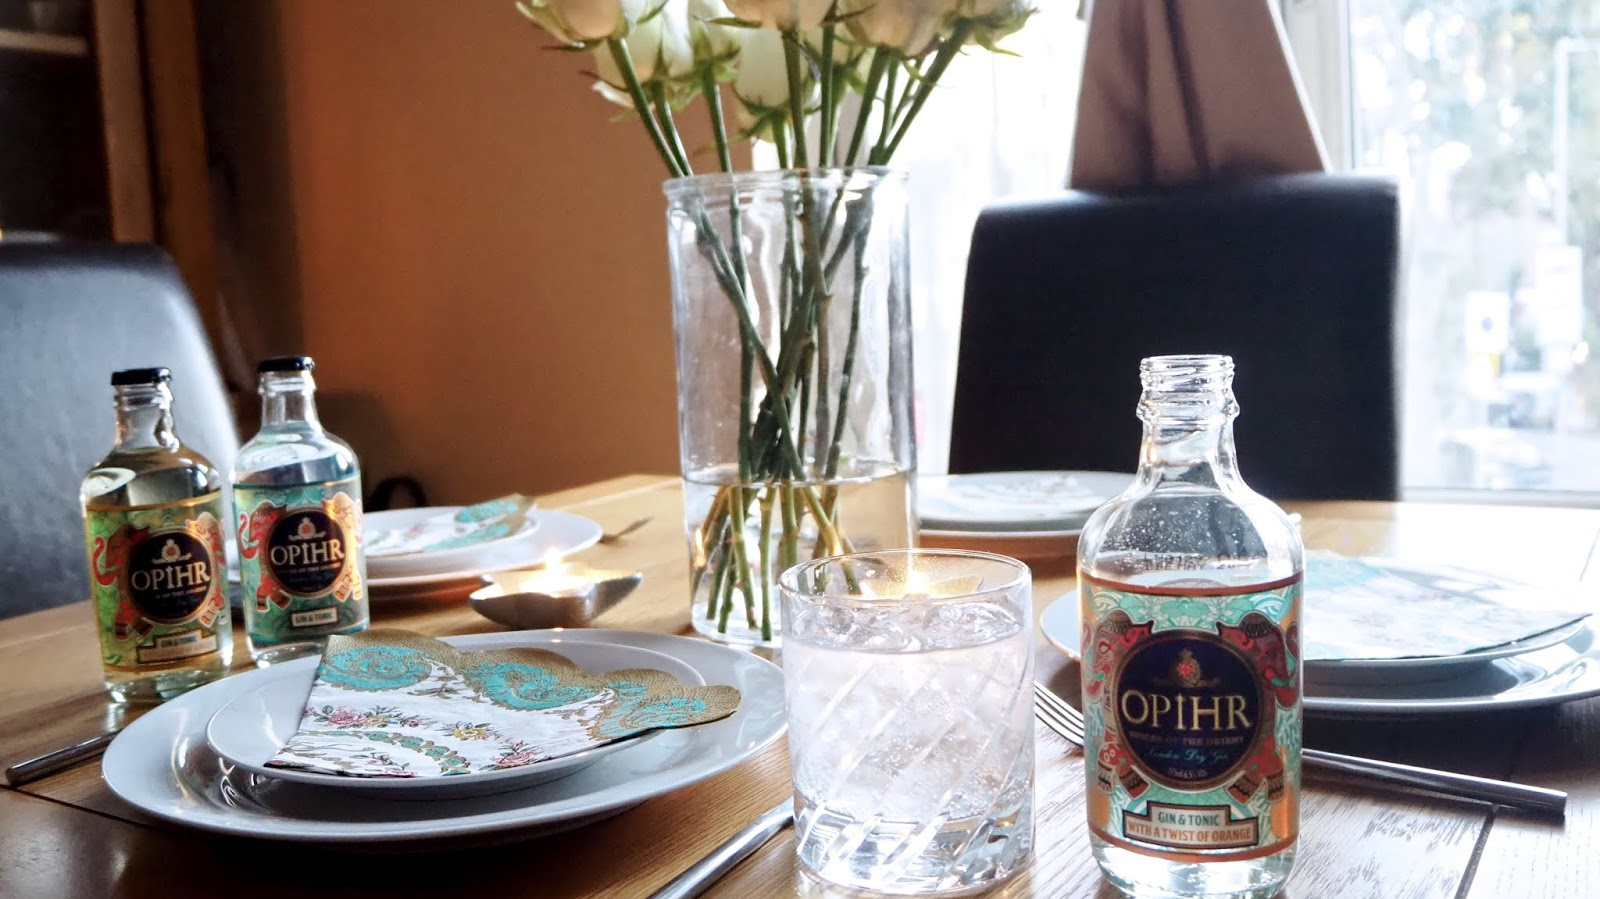 Tablesetting and bottles of Opihr Ready-to-Drink Gin & Tonic